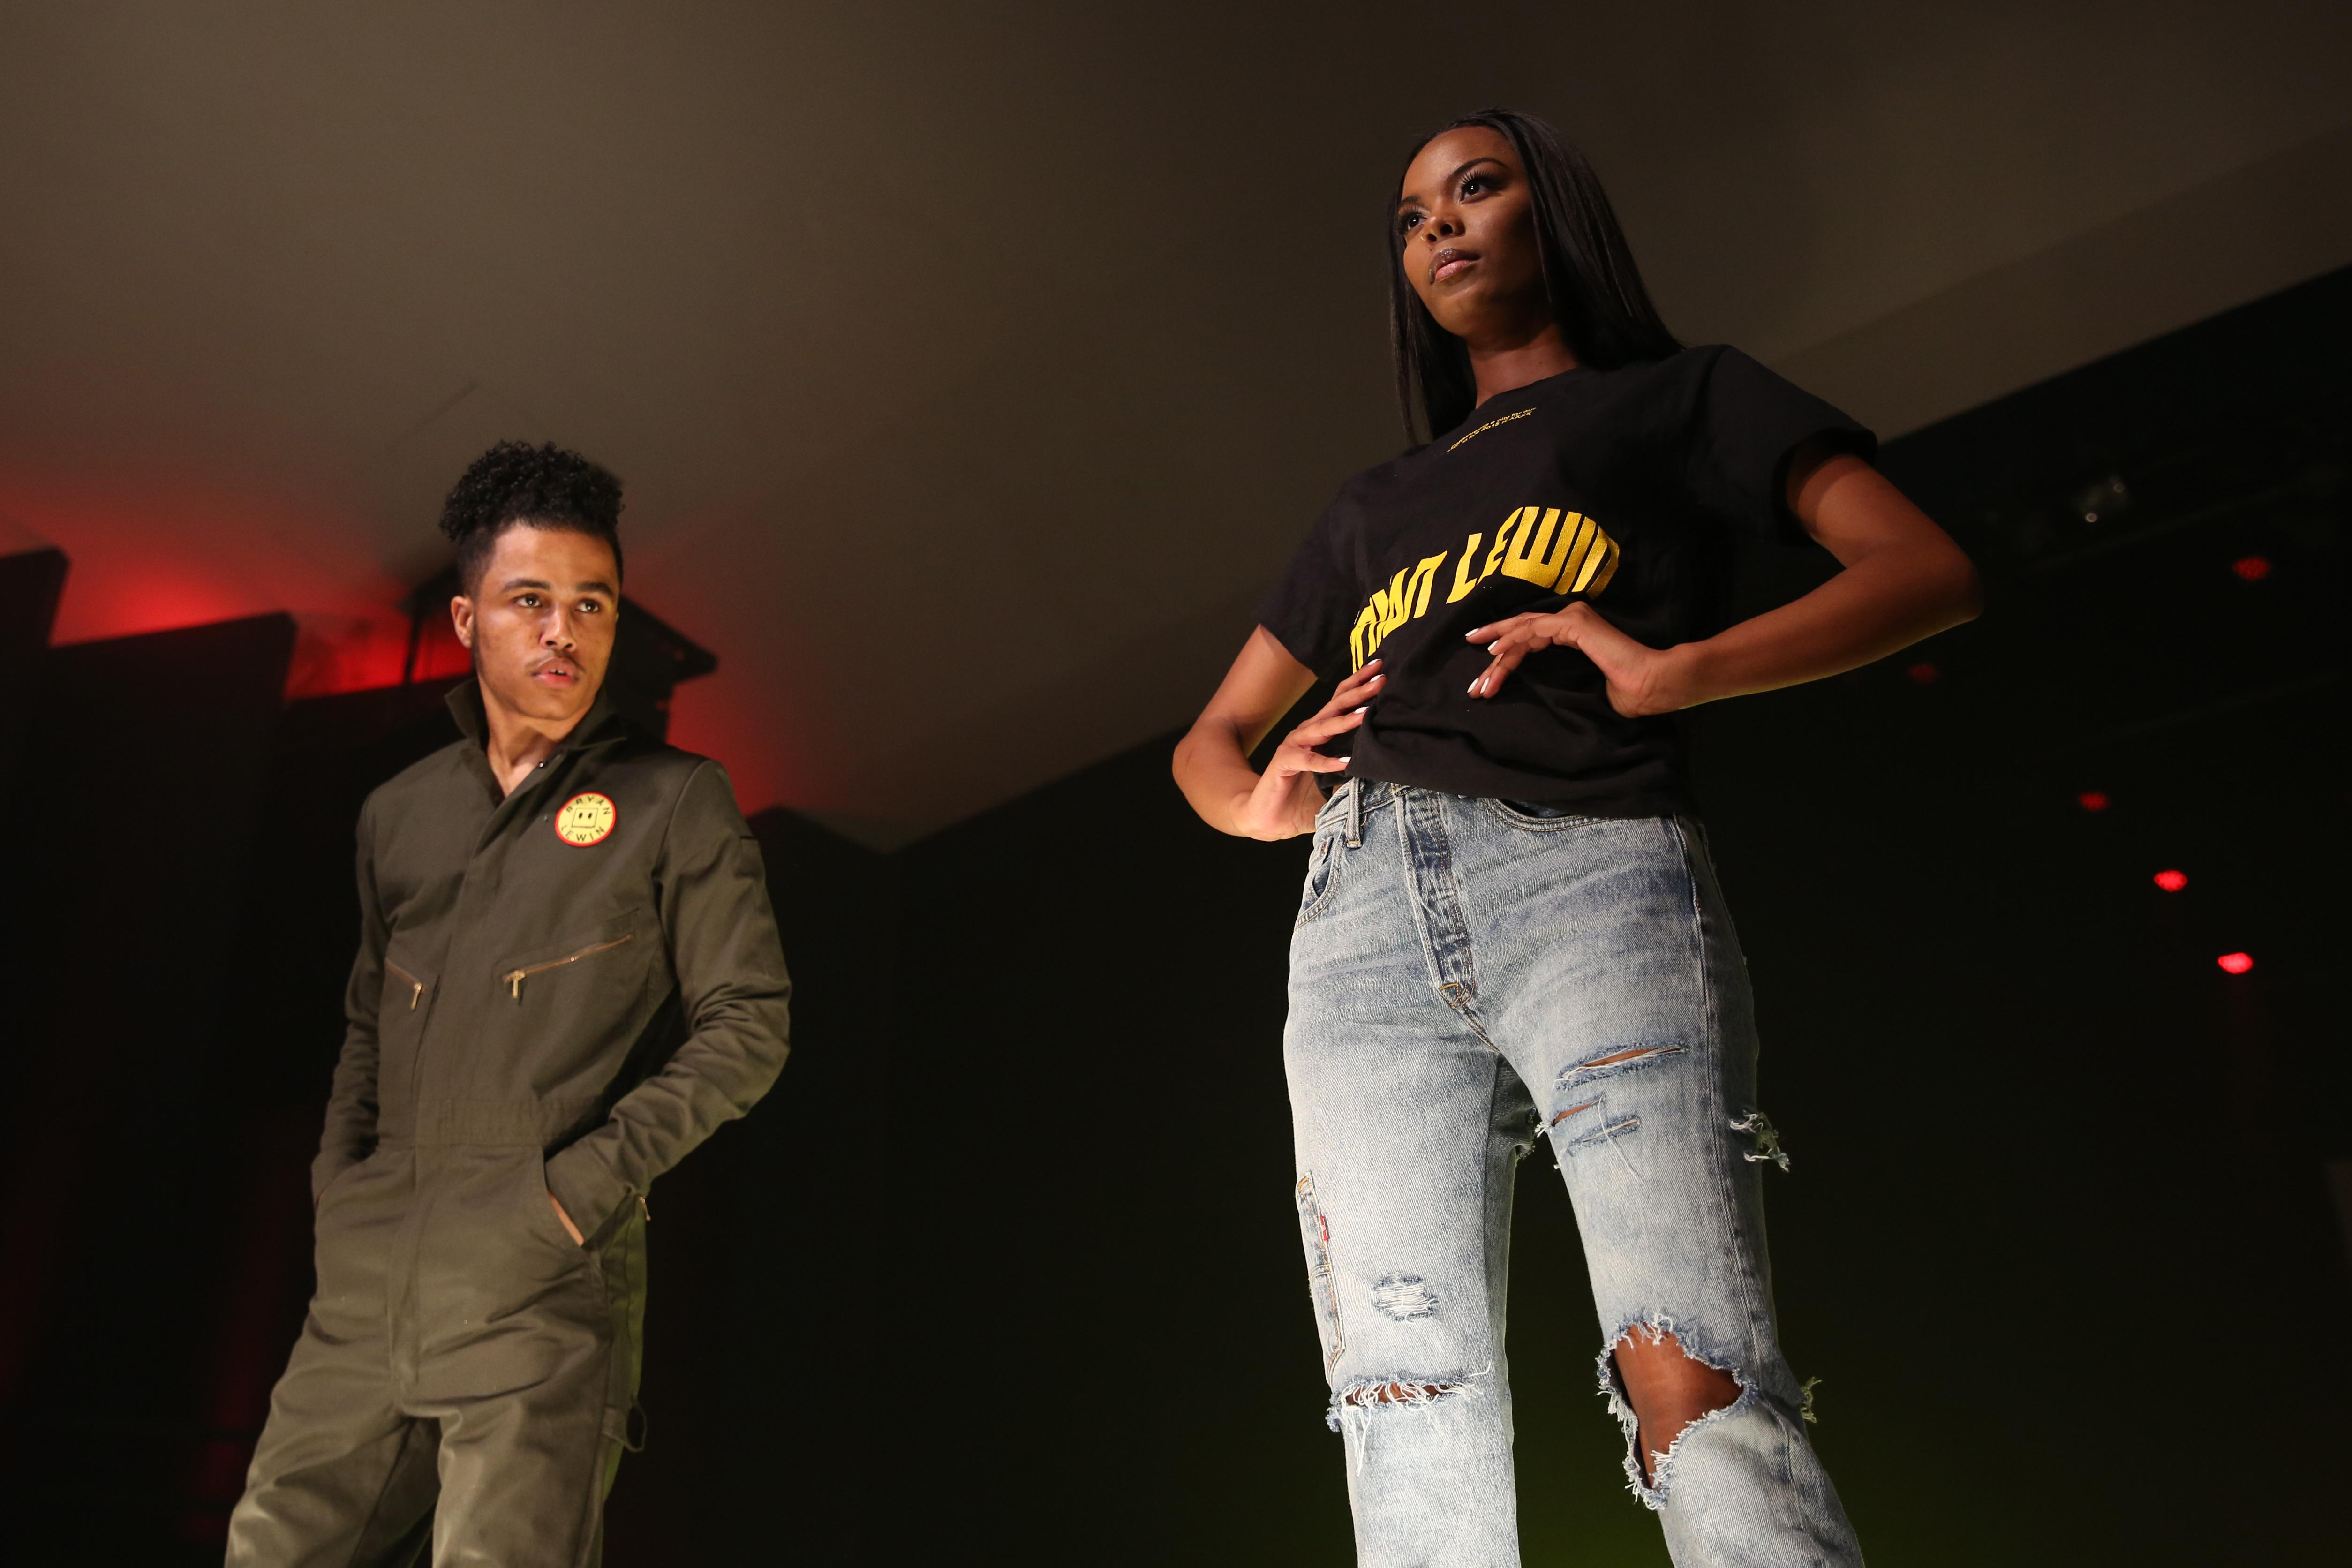 D.C. has a bad reputation for boring fashion, but the students of Howard University are fighting back. Their spring fashion show on March 30 brought together s